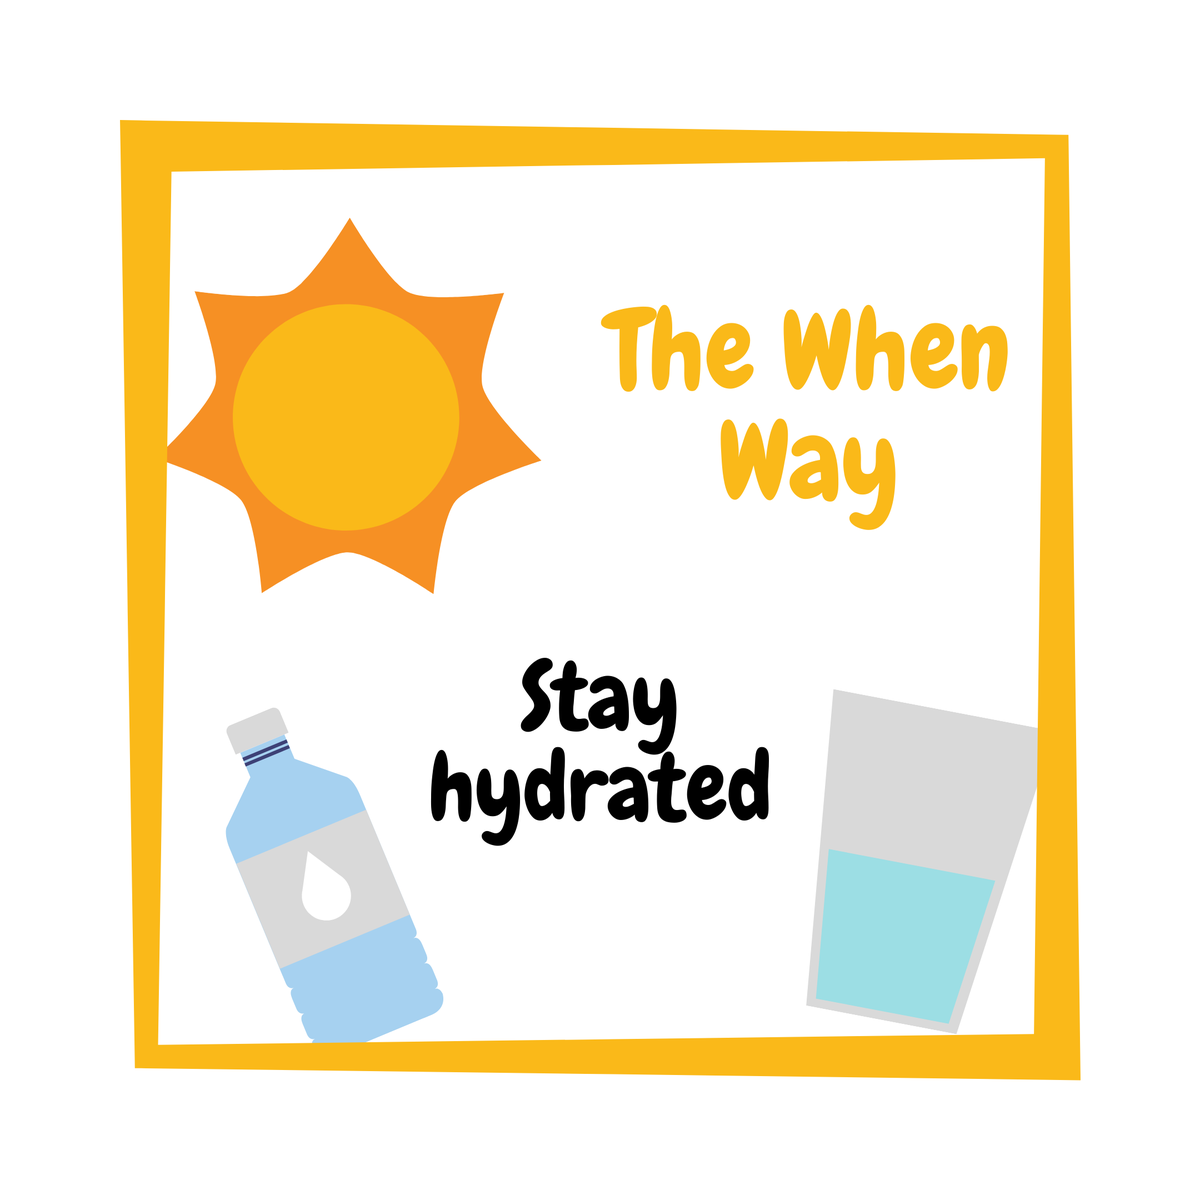 Another commandment of the When Way is staying hydrated. Water will not only make you healthier; it will also make you more satisfied. Especially during these hot summer months, it'll help keep you going.